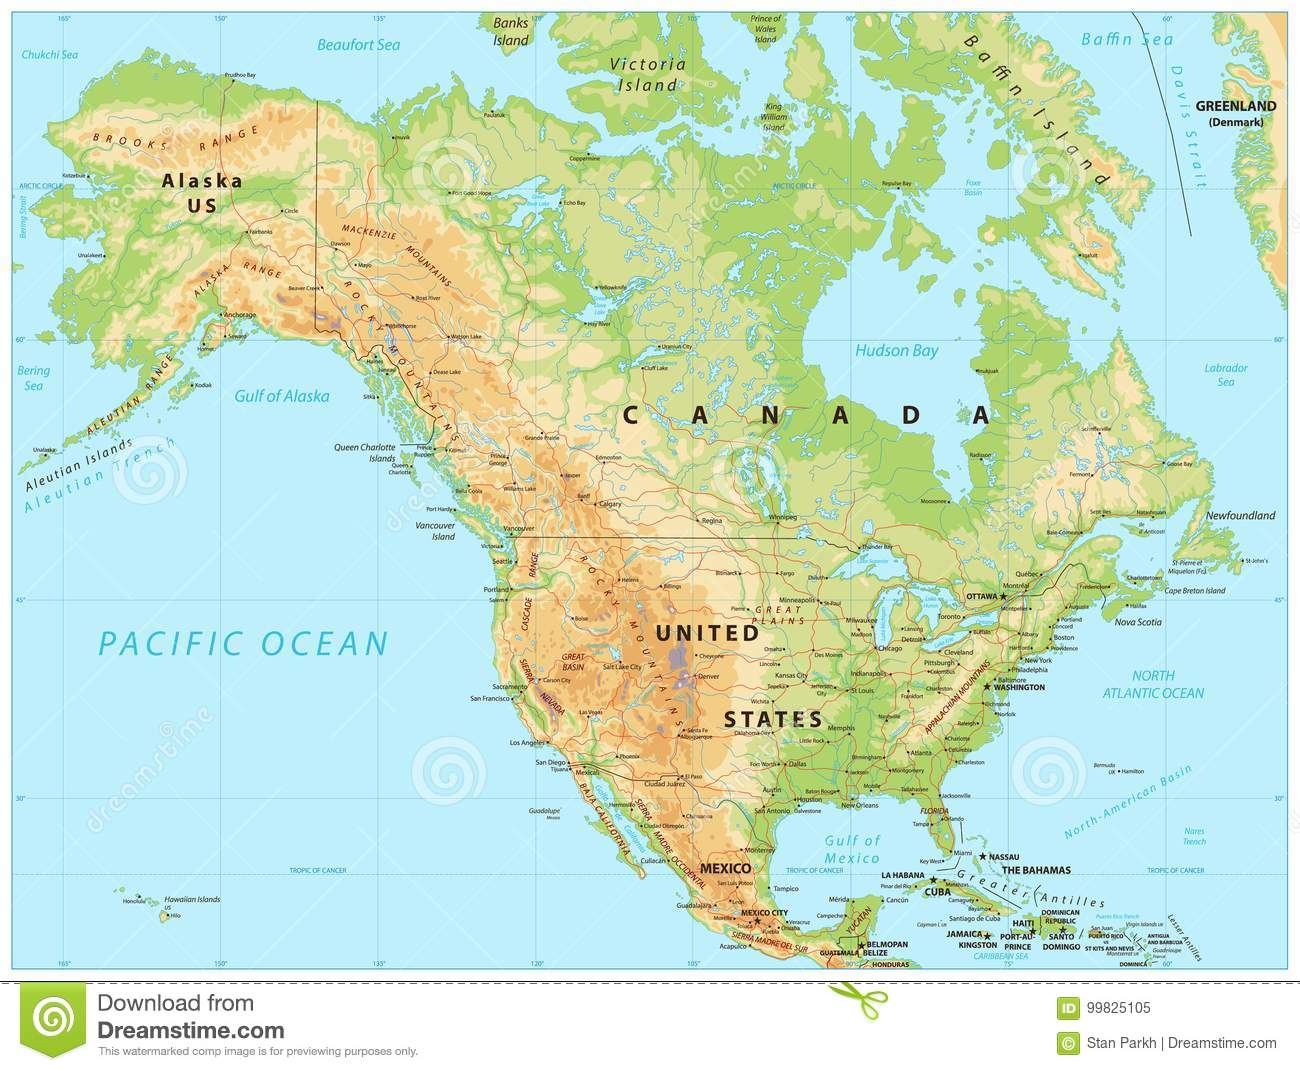 Americas Physical Map, North America Physical Map, Americas Physical Map